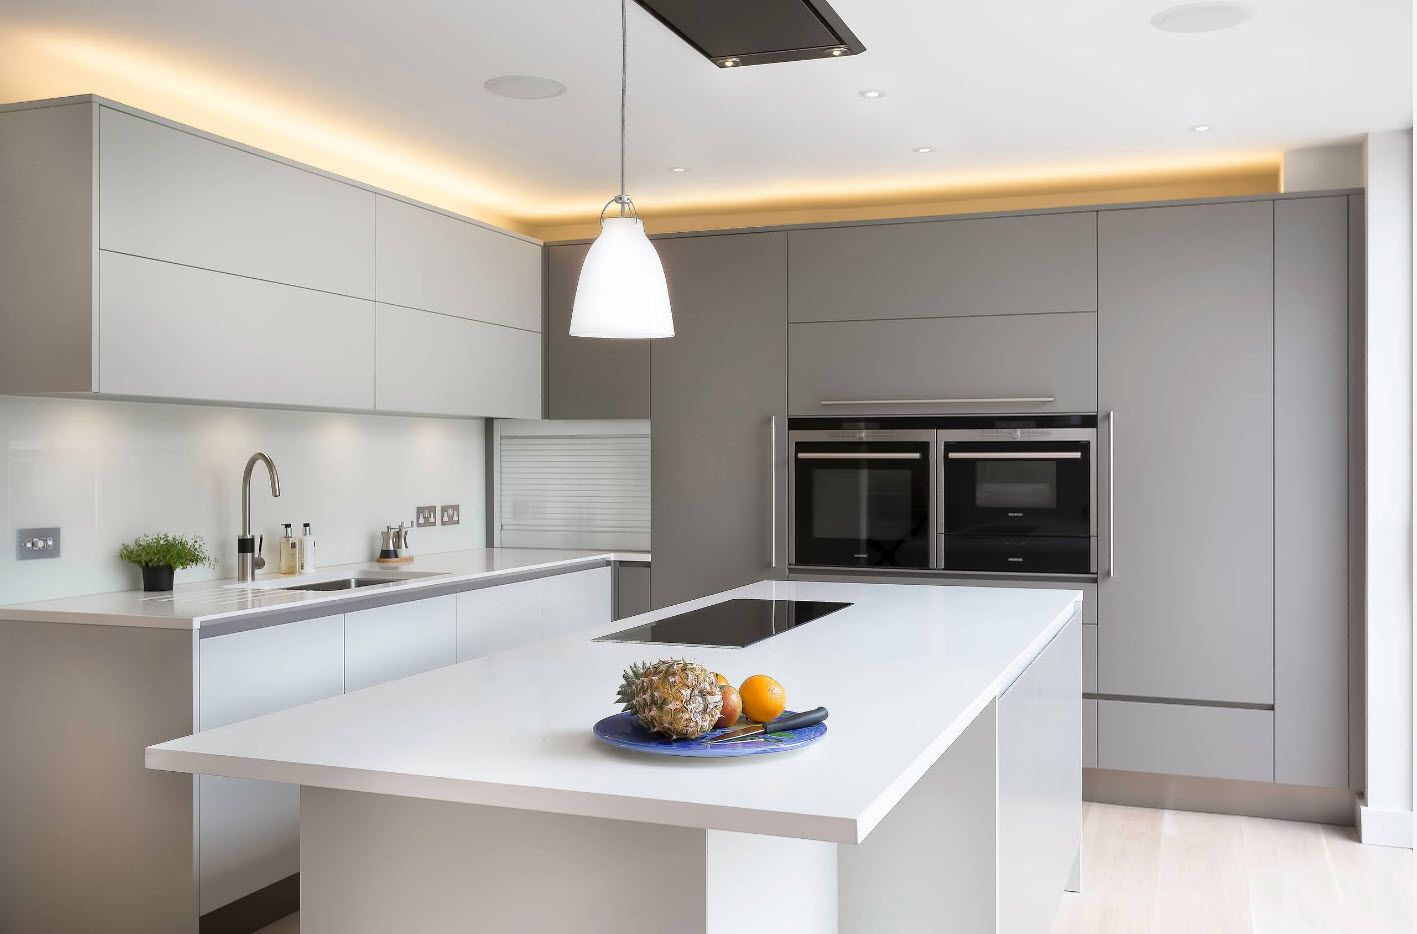 gray and white combination of colors on the large kitchen